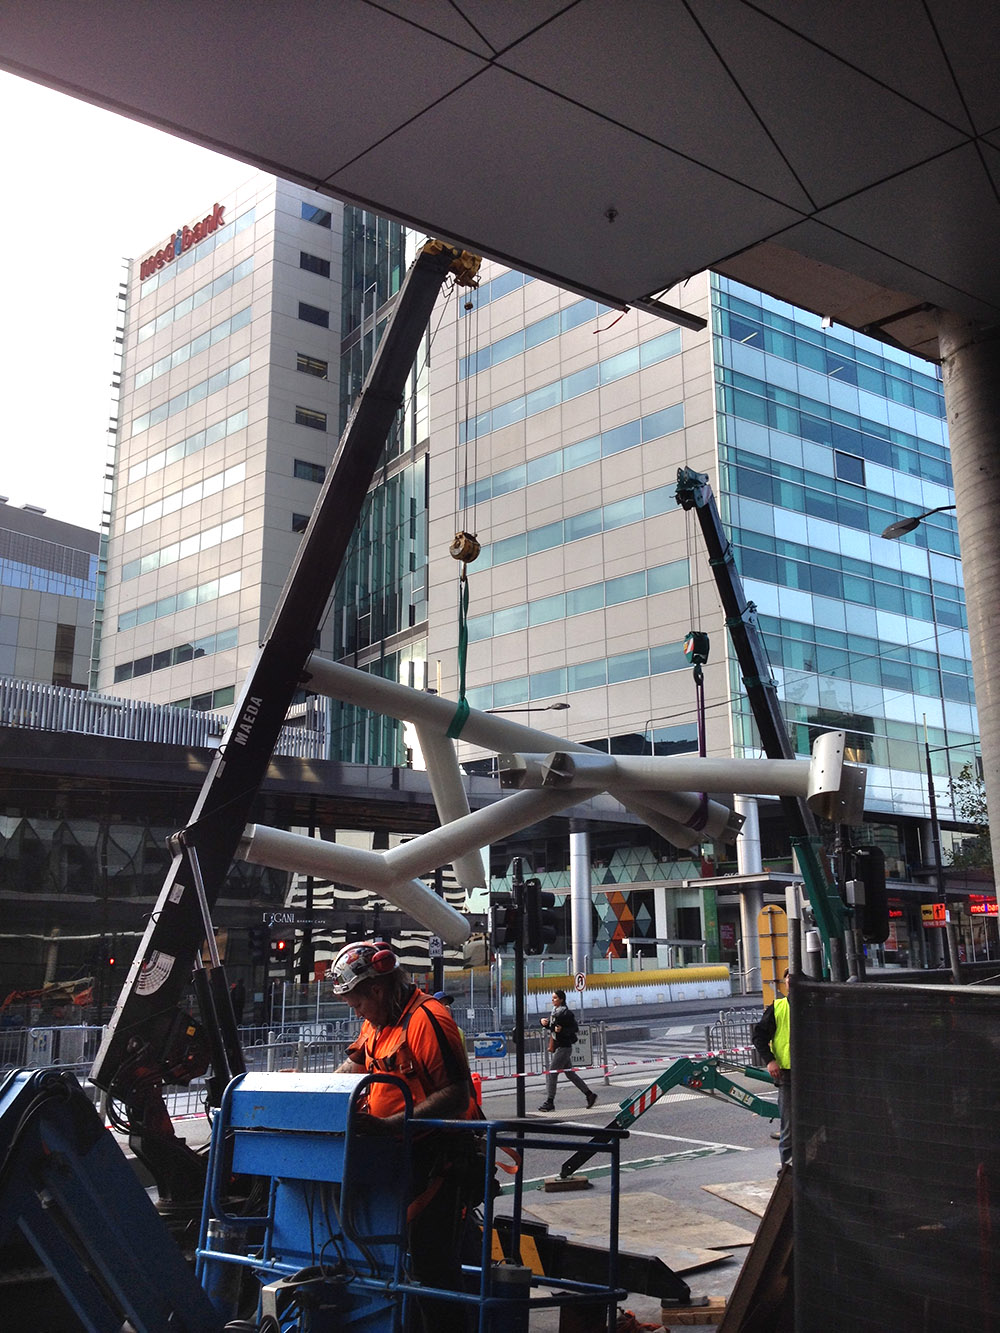 Horstmans' sculpture 'Super Sonic' undergoes construction in Collins Square. Photo provided by Hassell Studio